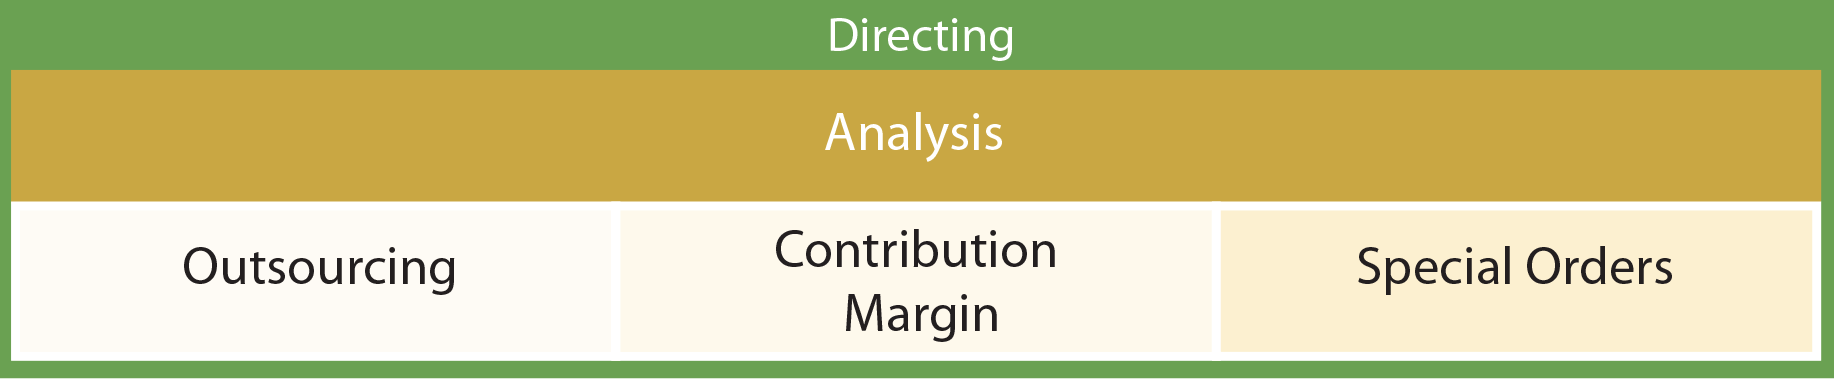 Managerial Accounting Functions - Analysis chart